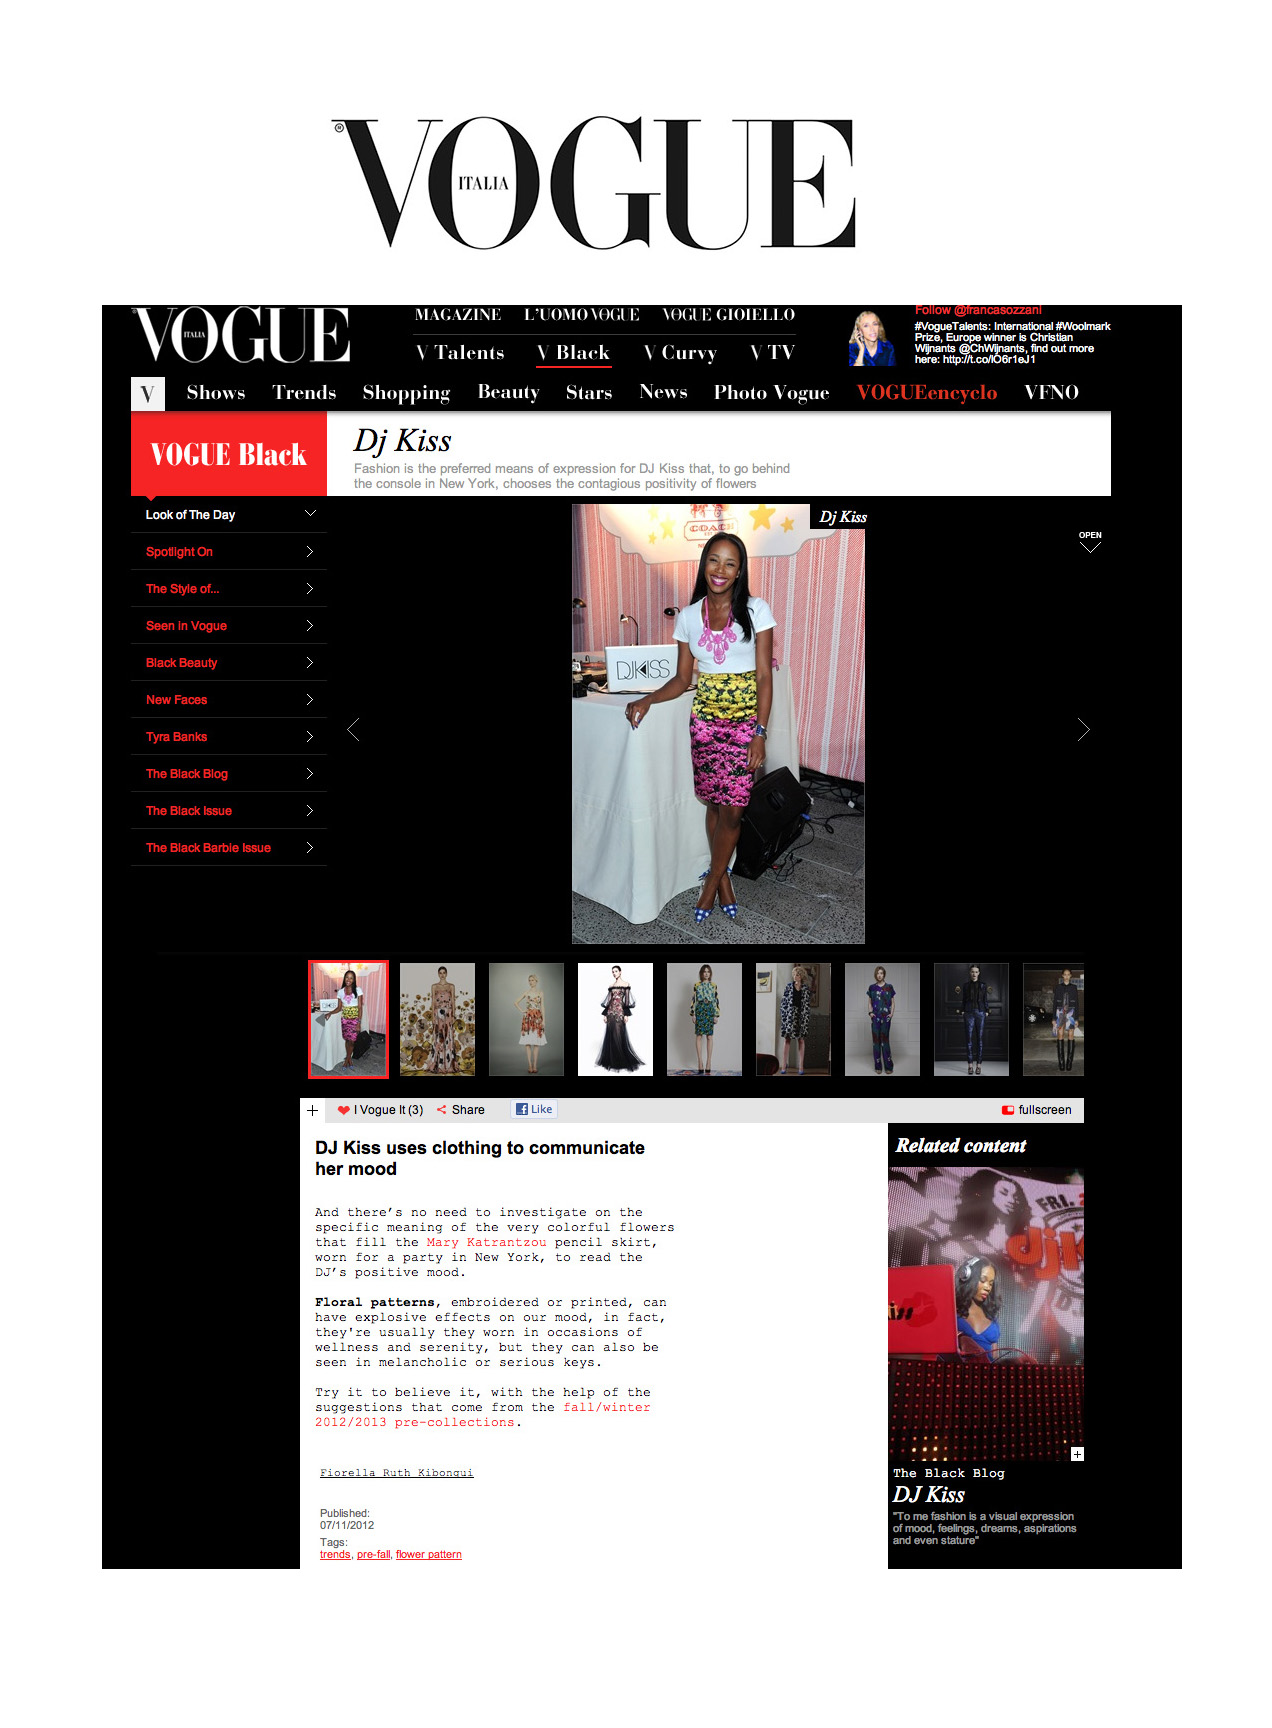 Vogue Italia - Look of The Day